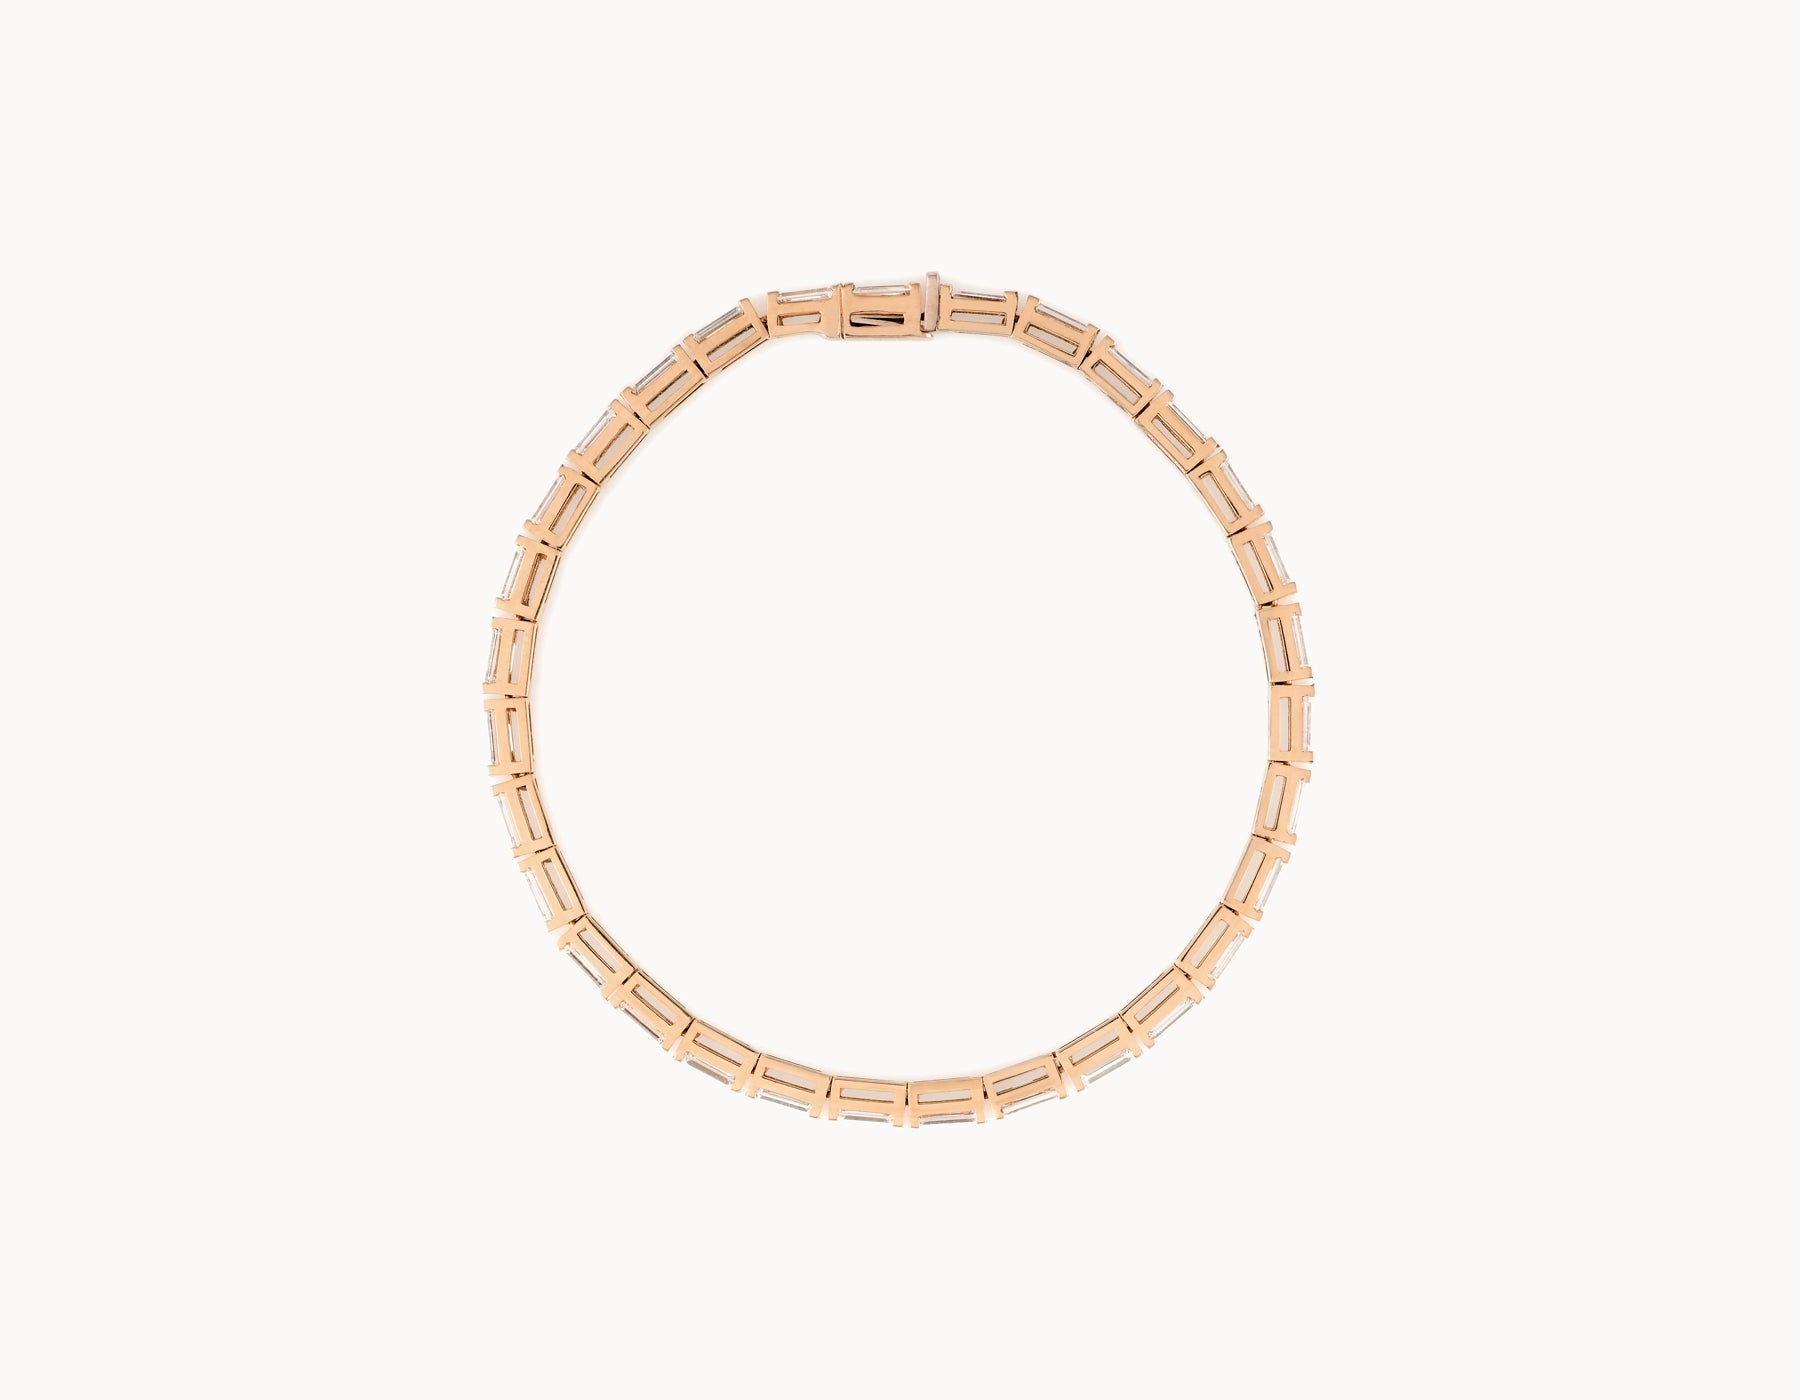 Simple Modern 18k Rose Gold Baguette Diamond Tennis Bracelet